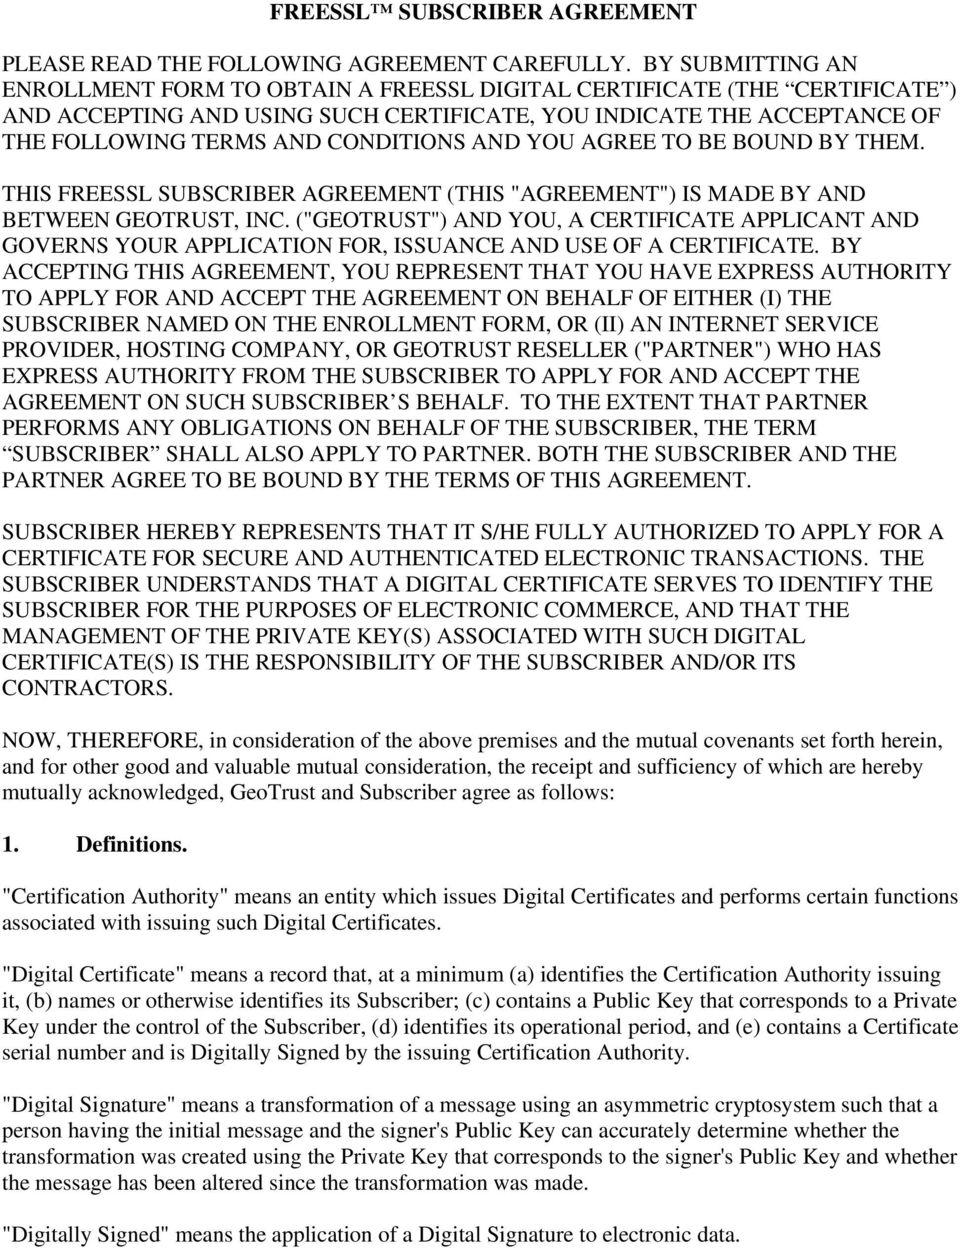 "AND YOU AGREE TO BE BOUND BY THEM. THIS FREESSL SUBSCRIBER AGREEMENT (THIS ""AGREEMENT"") IS MADE BY AND BETWEEN GEOTRUST, INC."